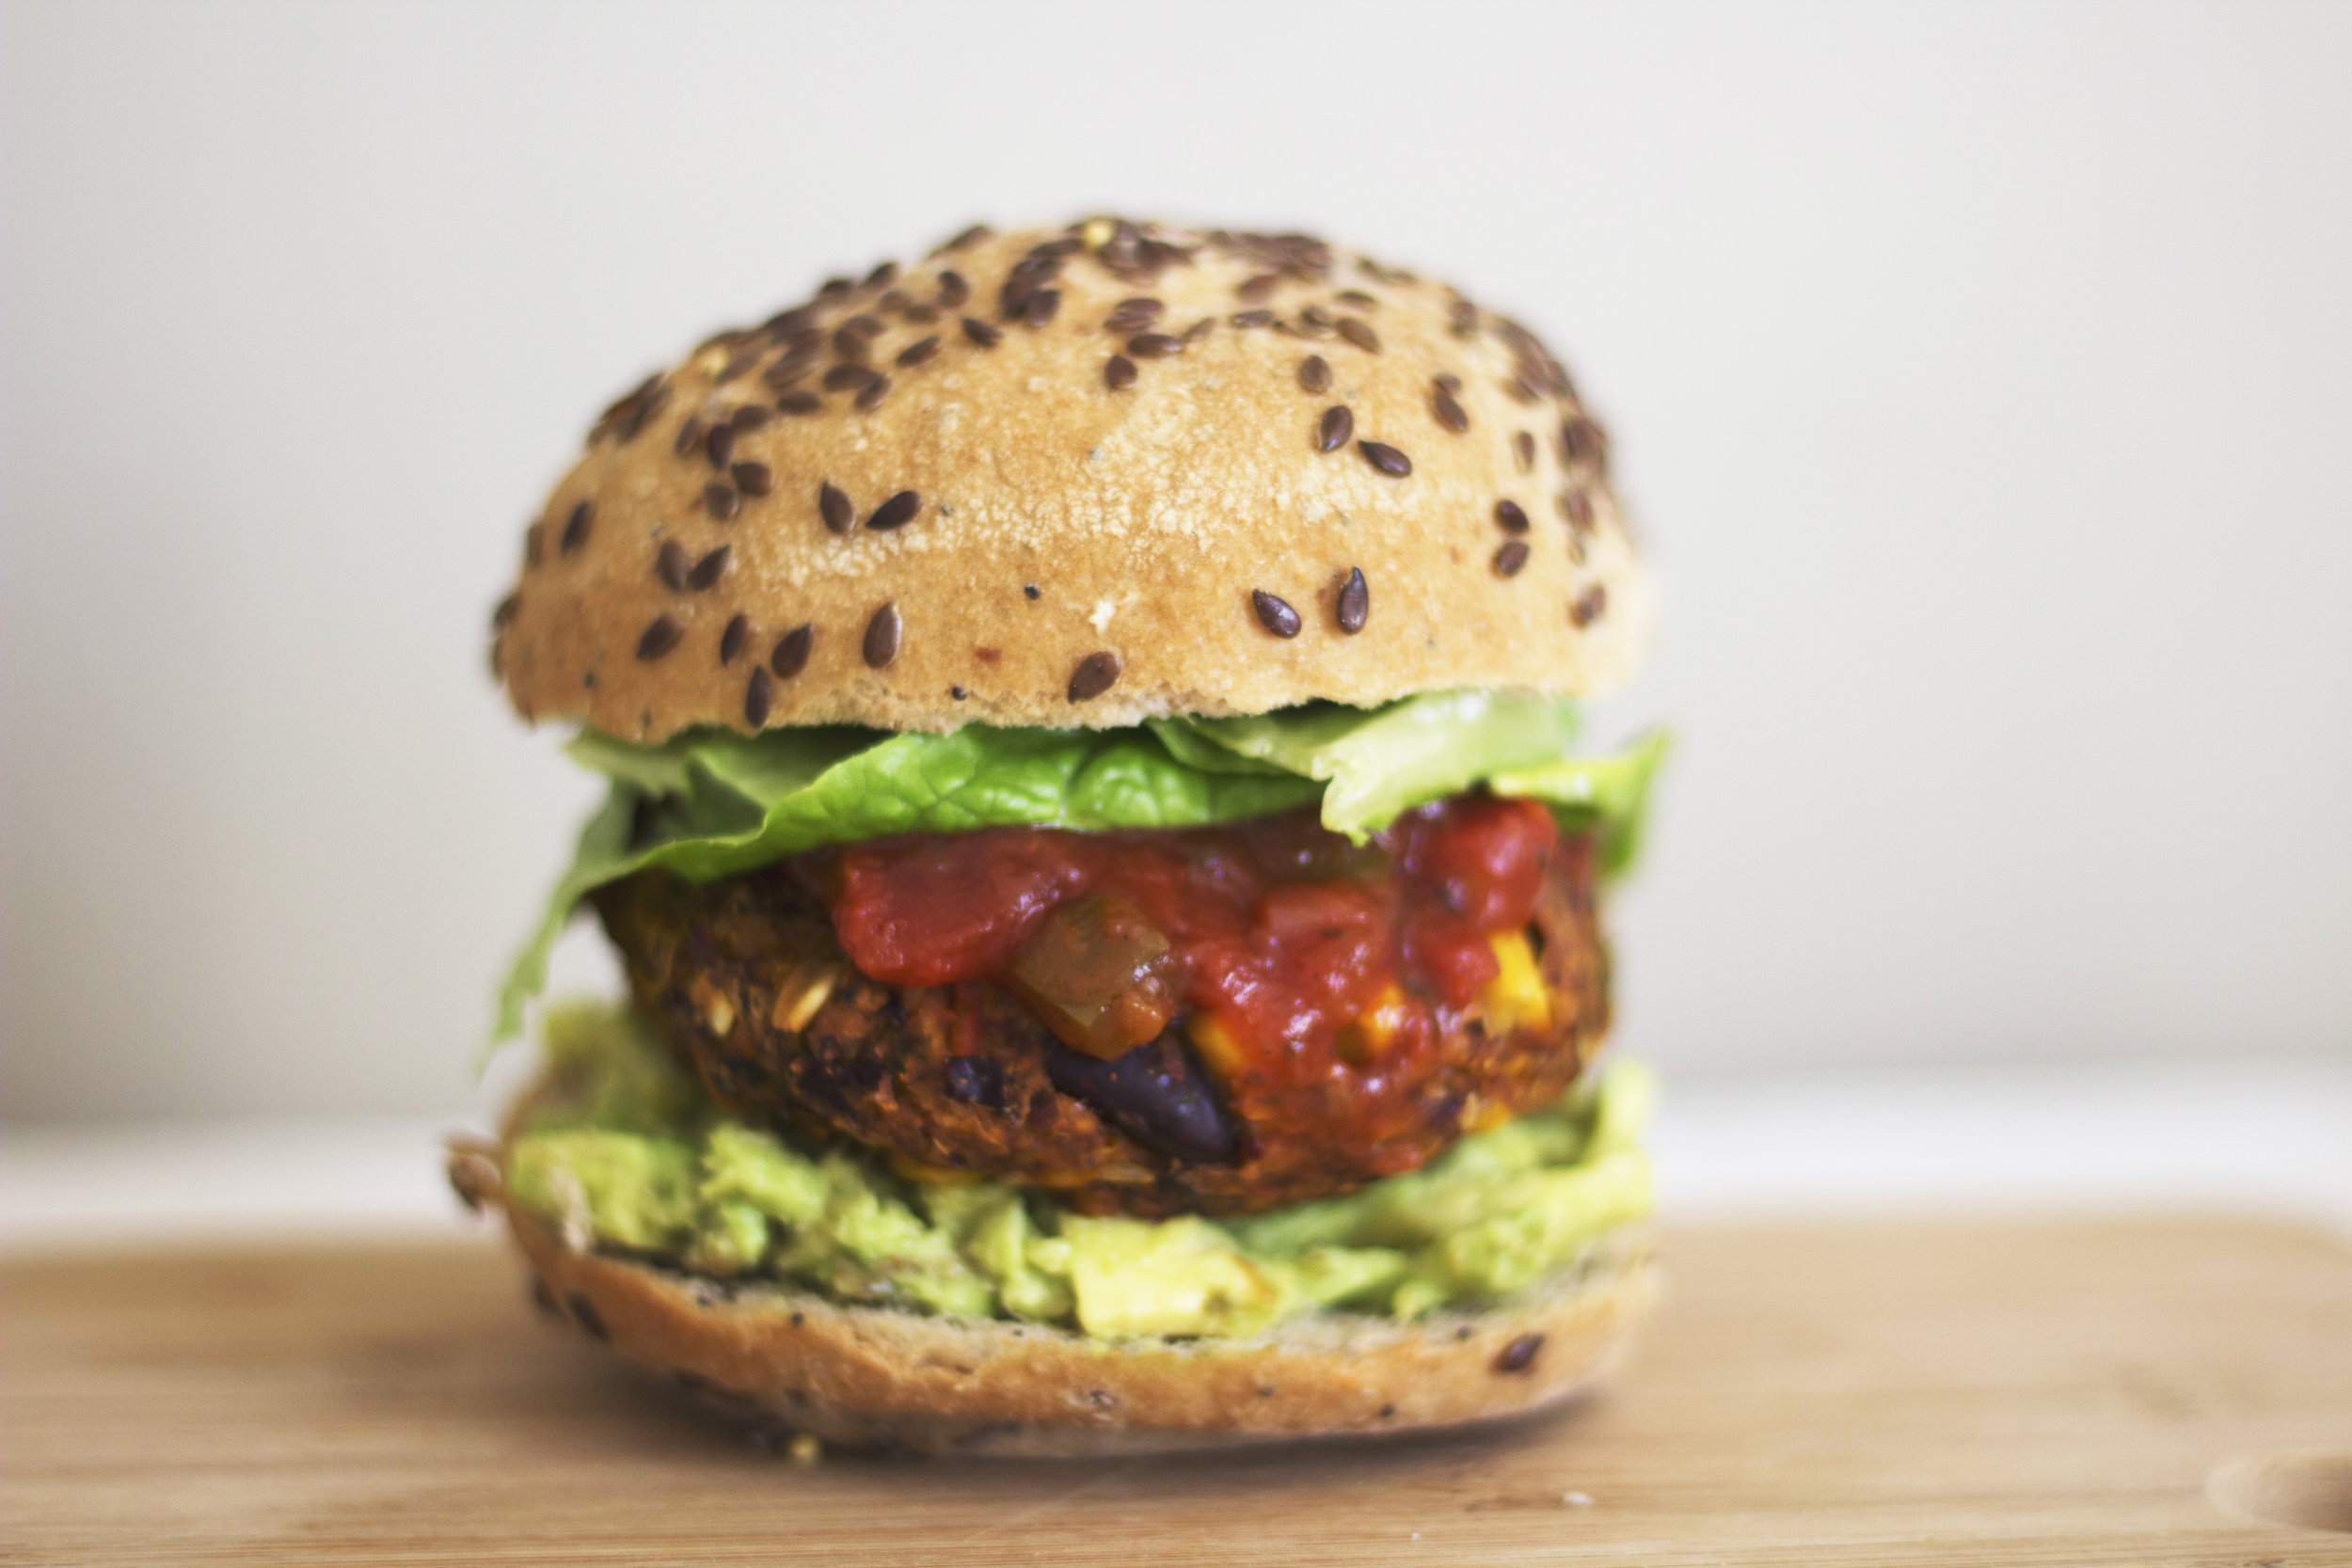 Full of flavour and protein, these bean burgers are easy to whip up in a rush. - prep time 5 mins     total time 20-40 mins     serves 5-6